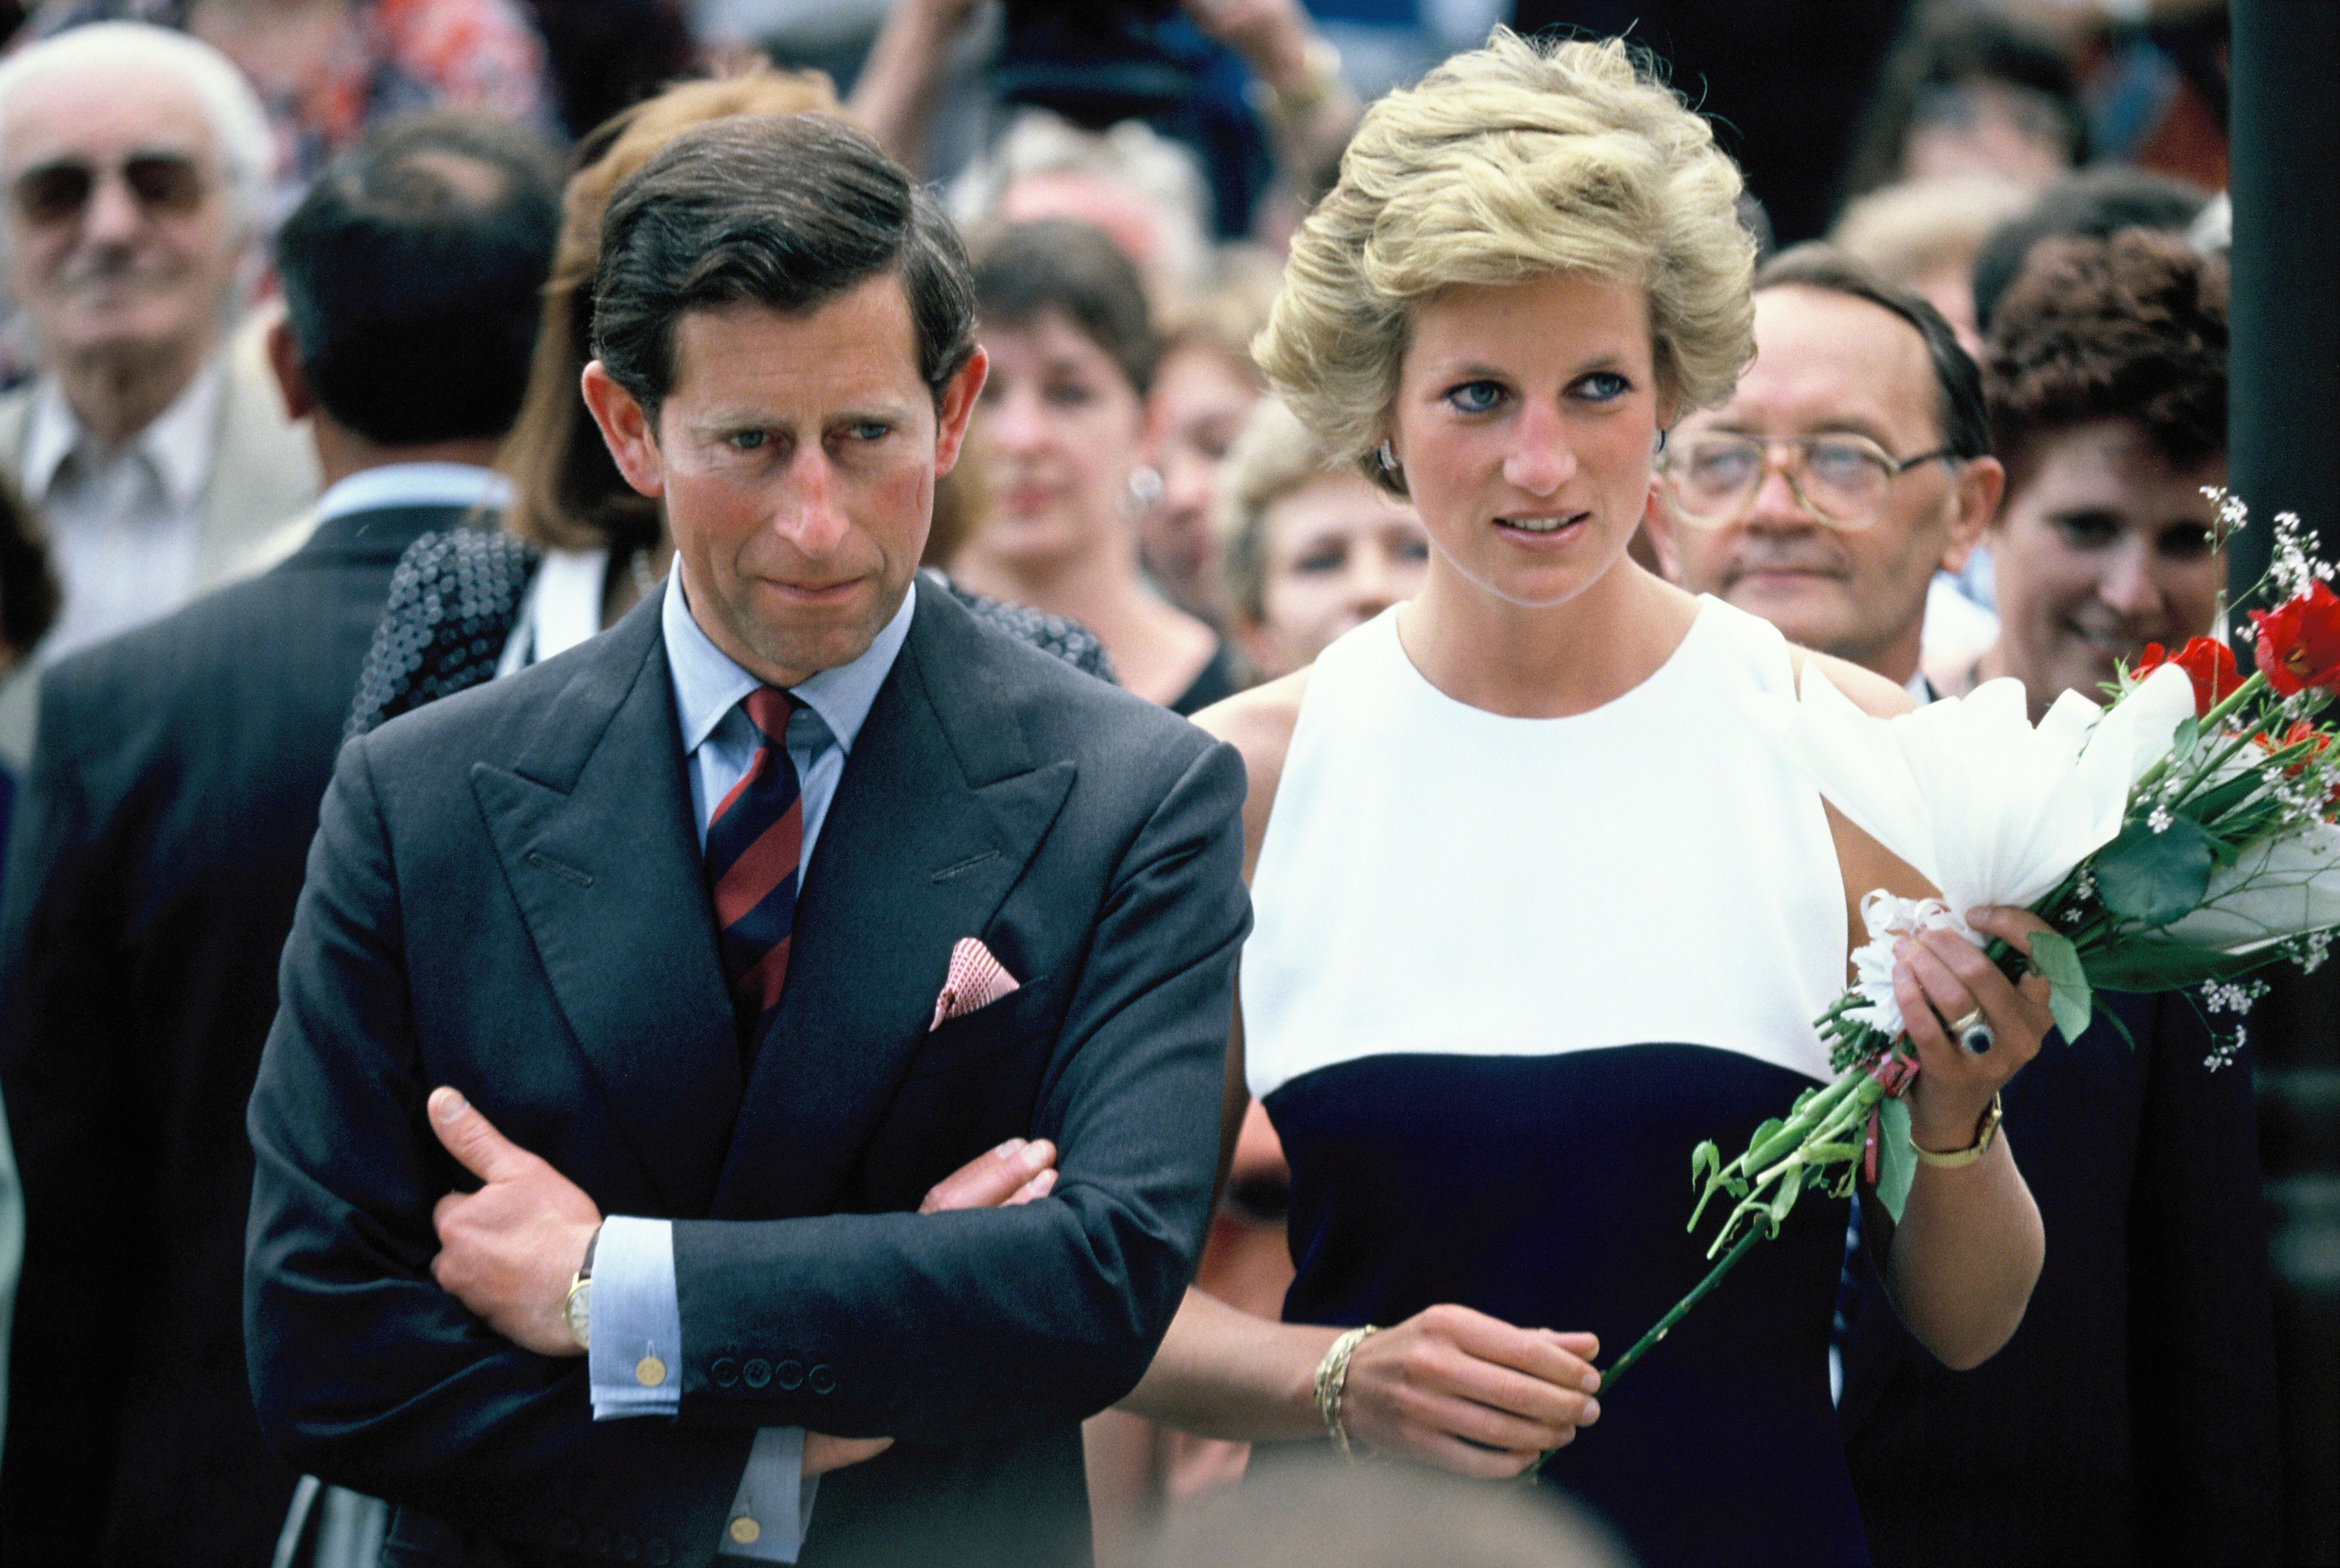 Charles and Diana, Prince and Princess of Wales, during their official visit to Hungary. | Source: Getty Images